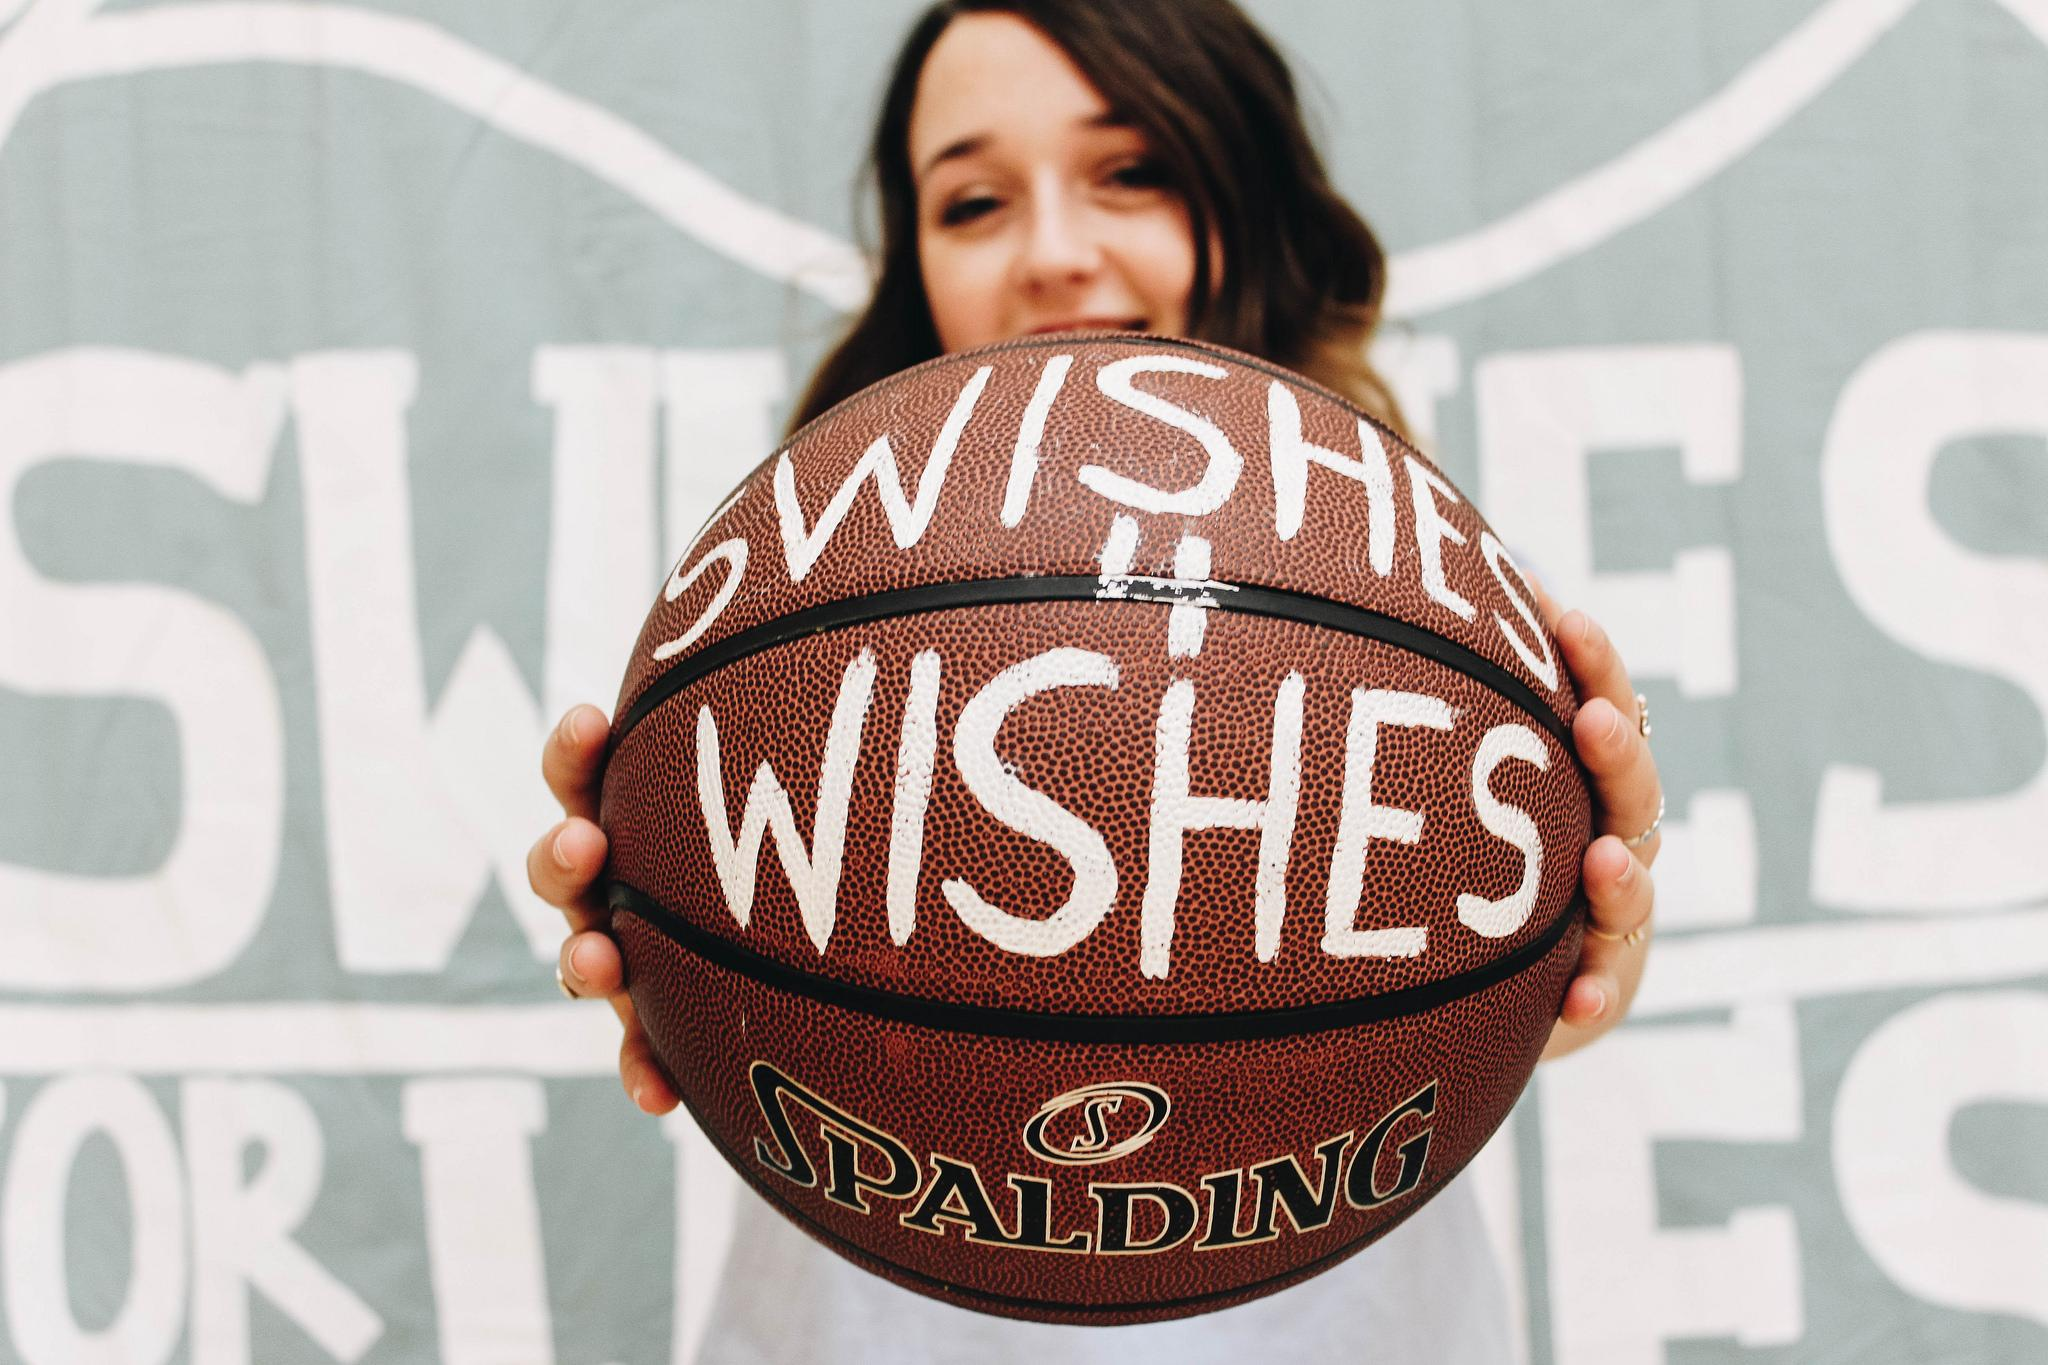 A woman holds a basketball up that says Swishes for Wishes in paint